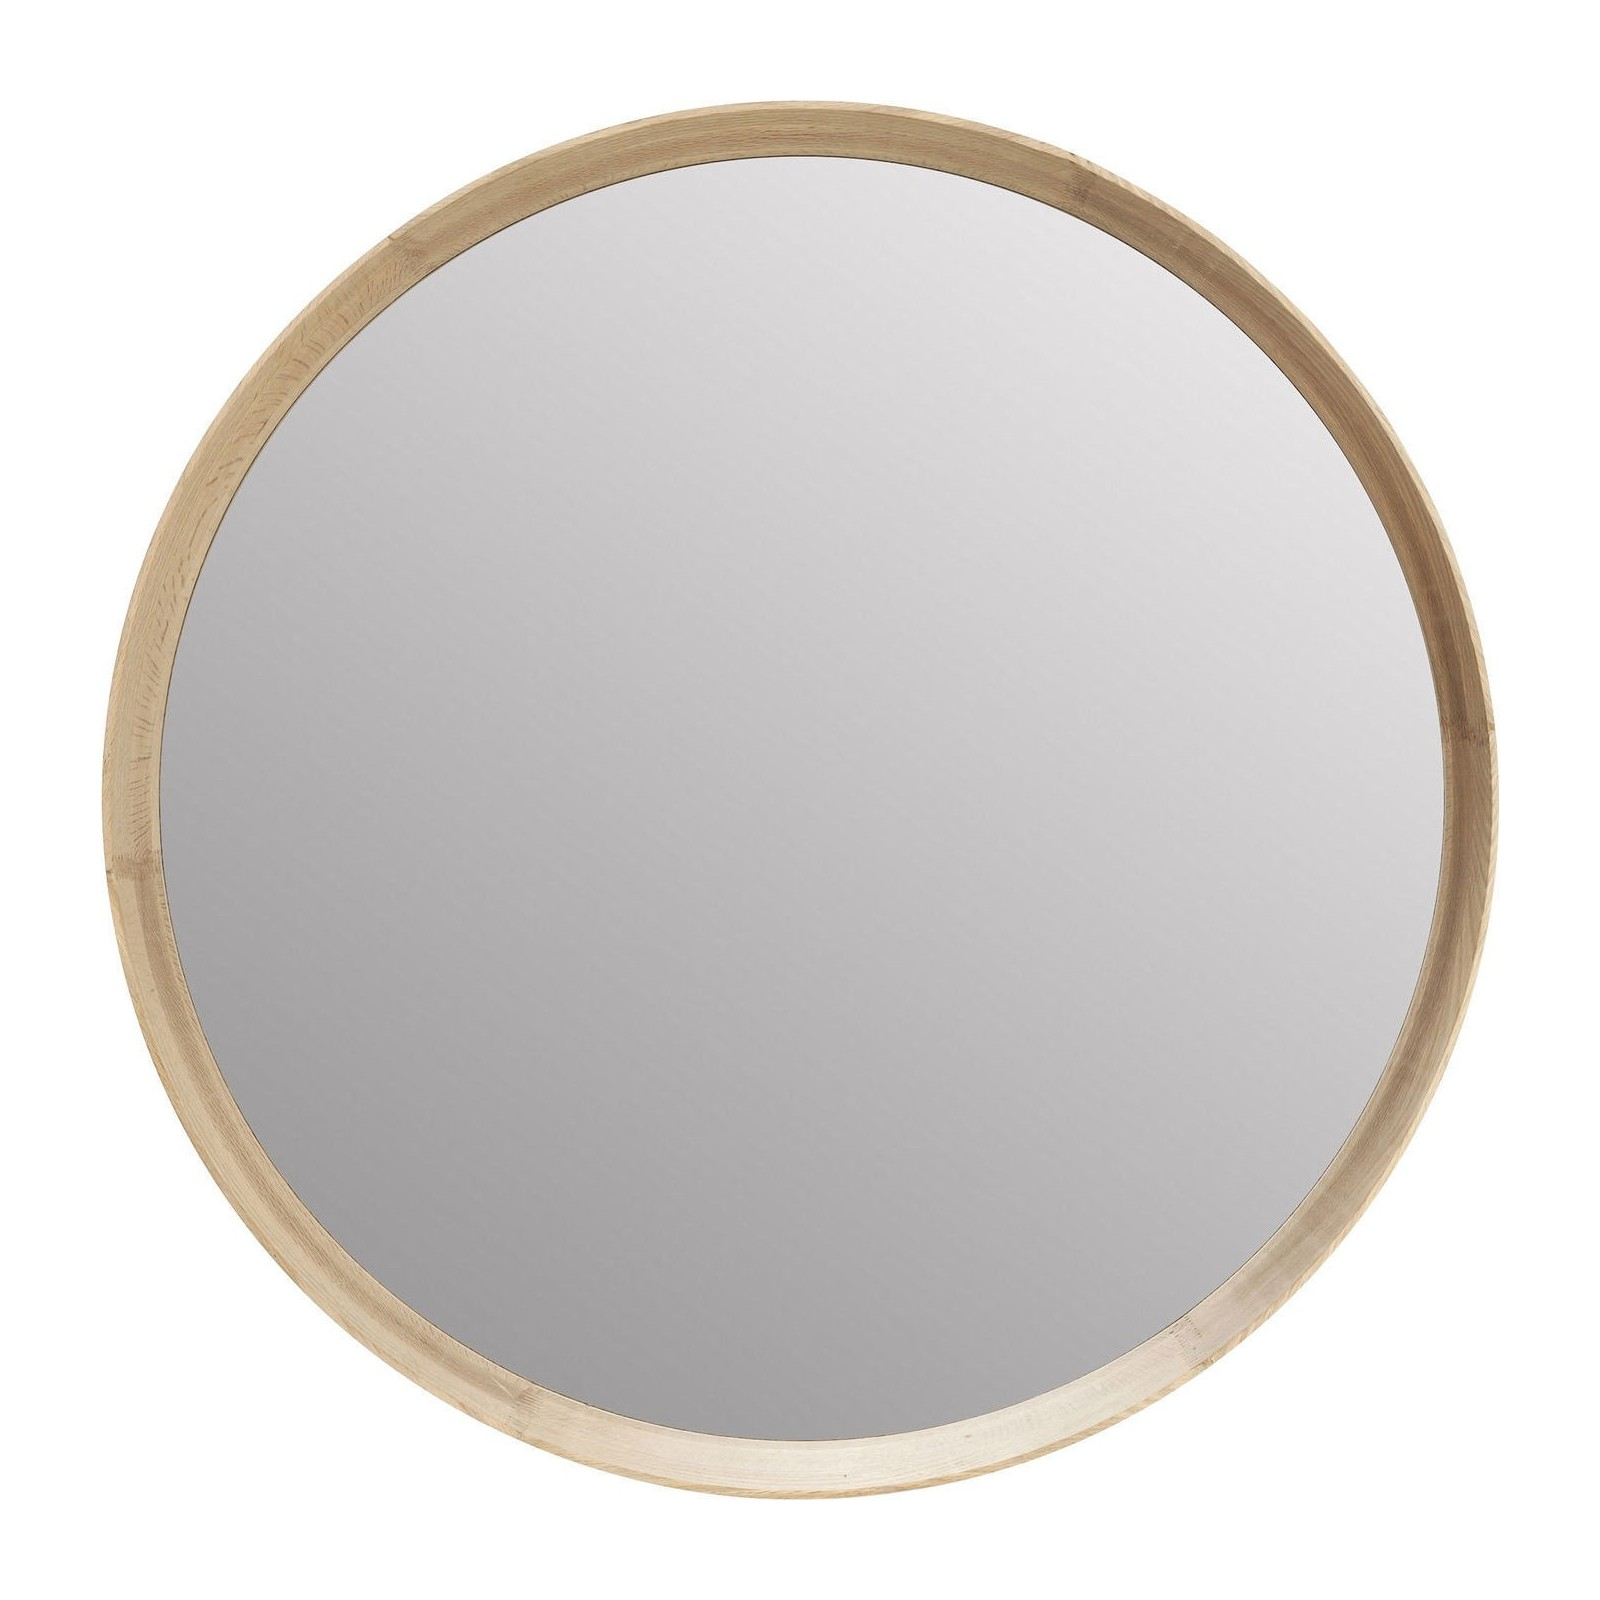 miroir rond ikea round mirrors ikea ireland dublin miroir stave ikea un jour un cadeau le. Black Bedroom Furniture Sets. Home Design Ideas